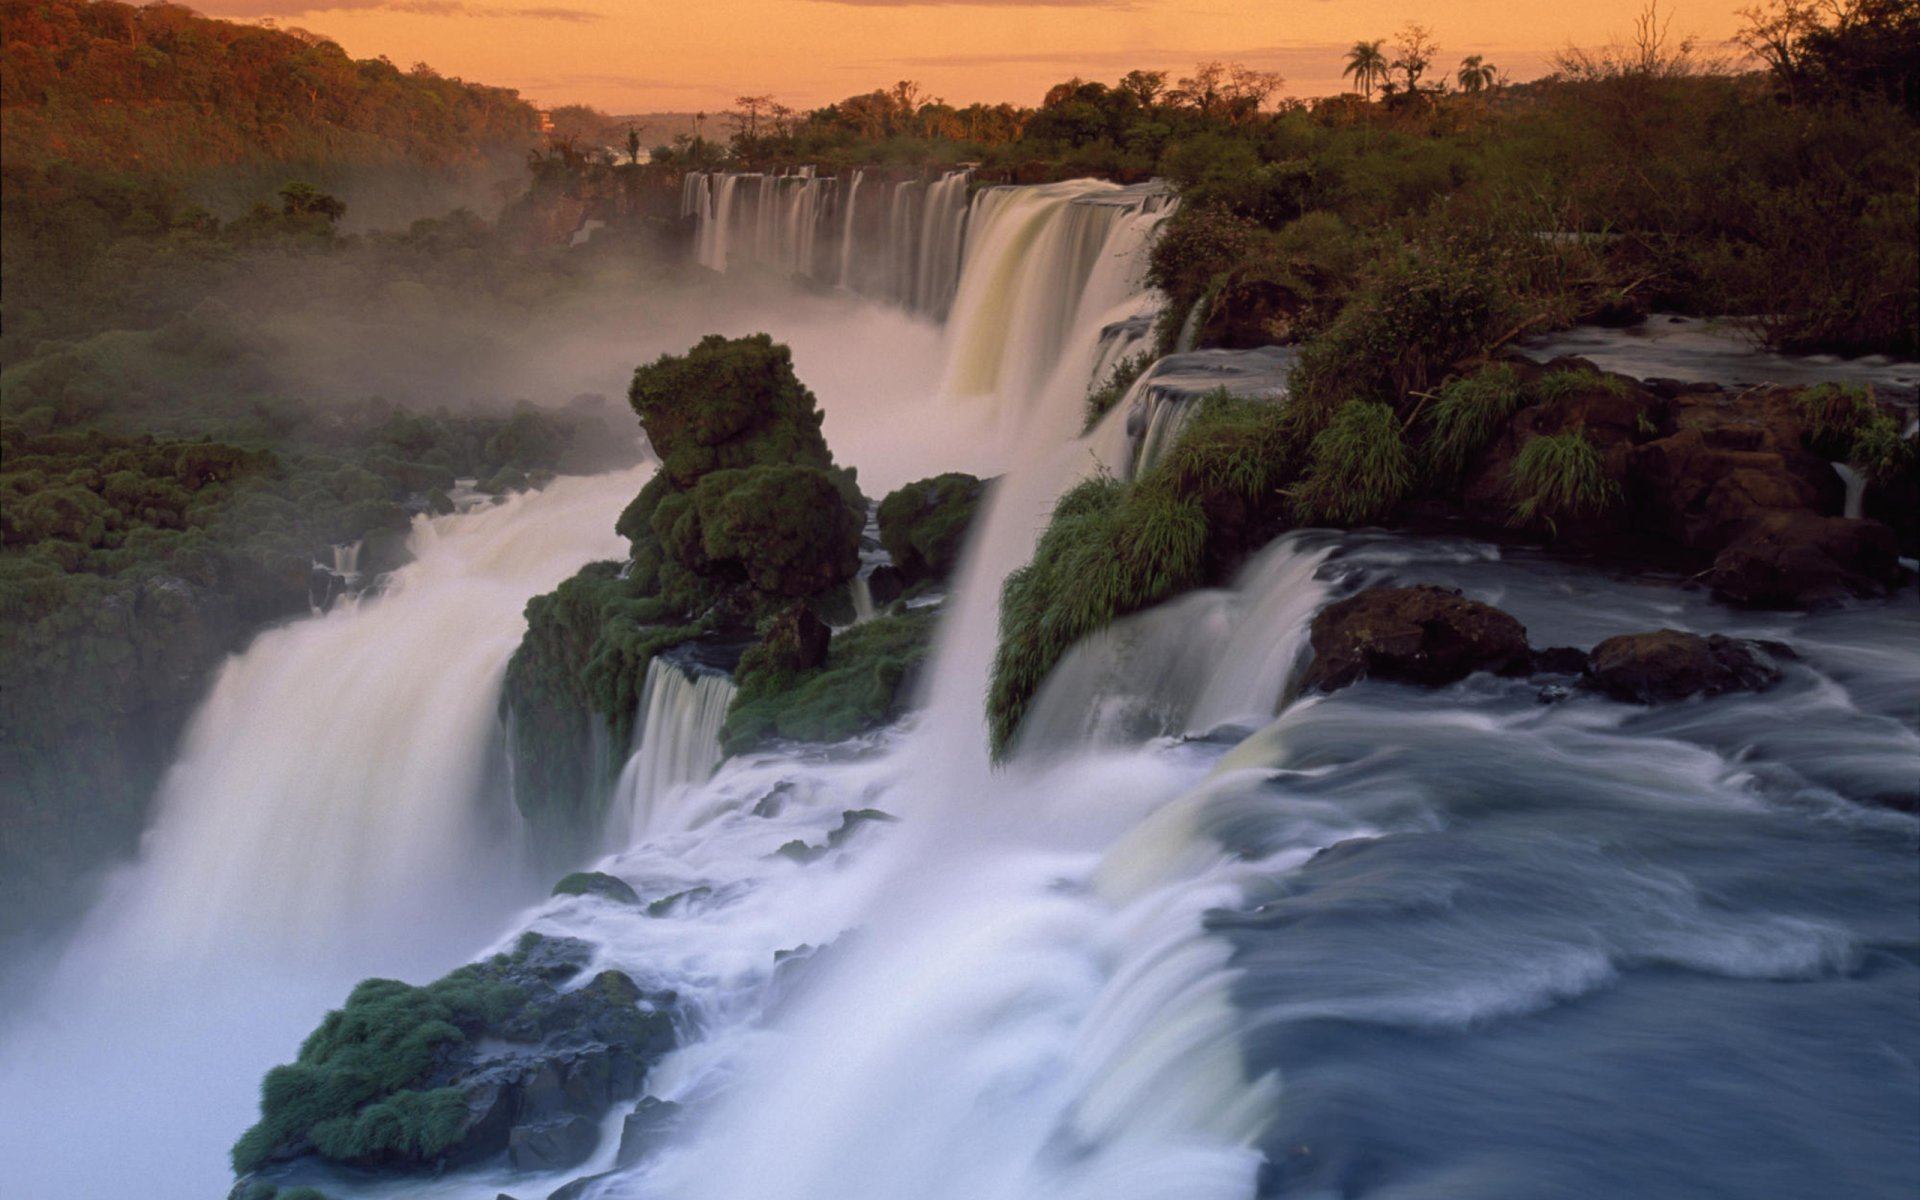 Iguazu Falls Iphone Wallpaper Iguazu Falls Full Hd Wallpaper And Background Image